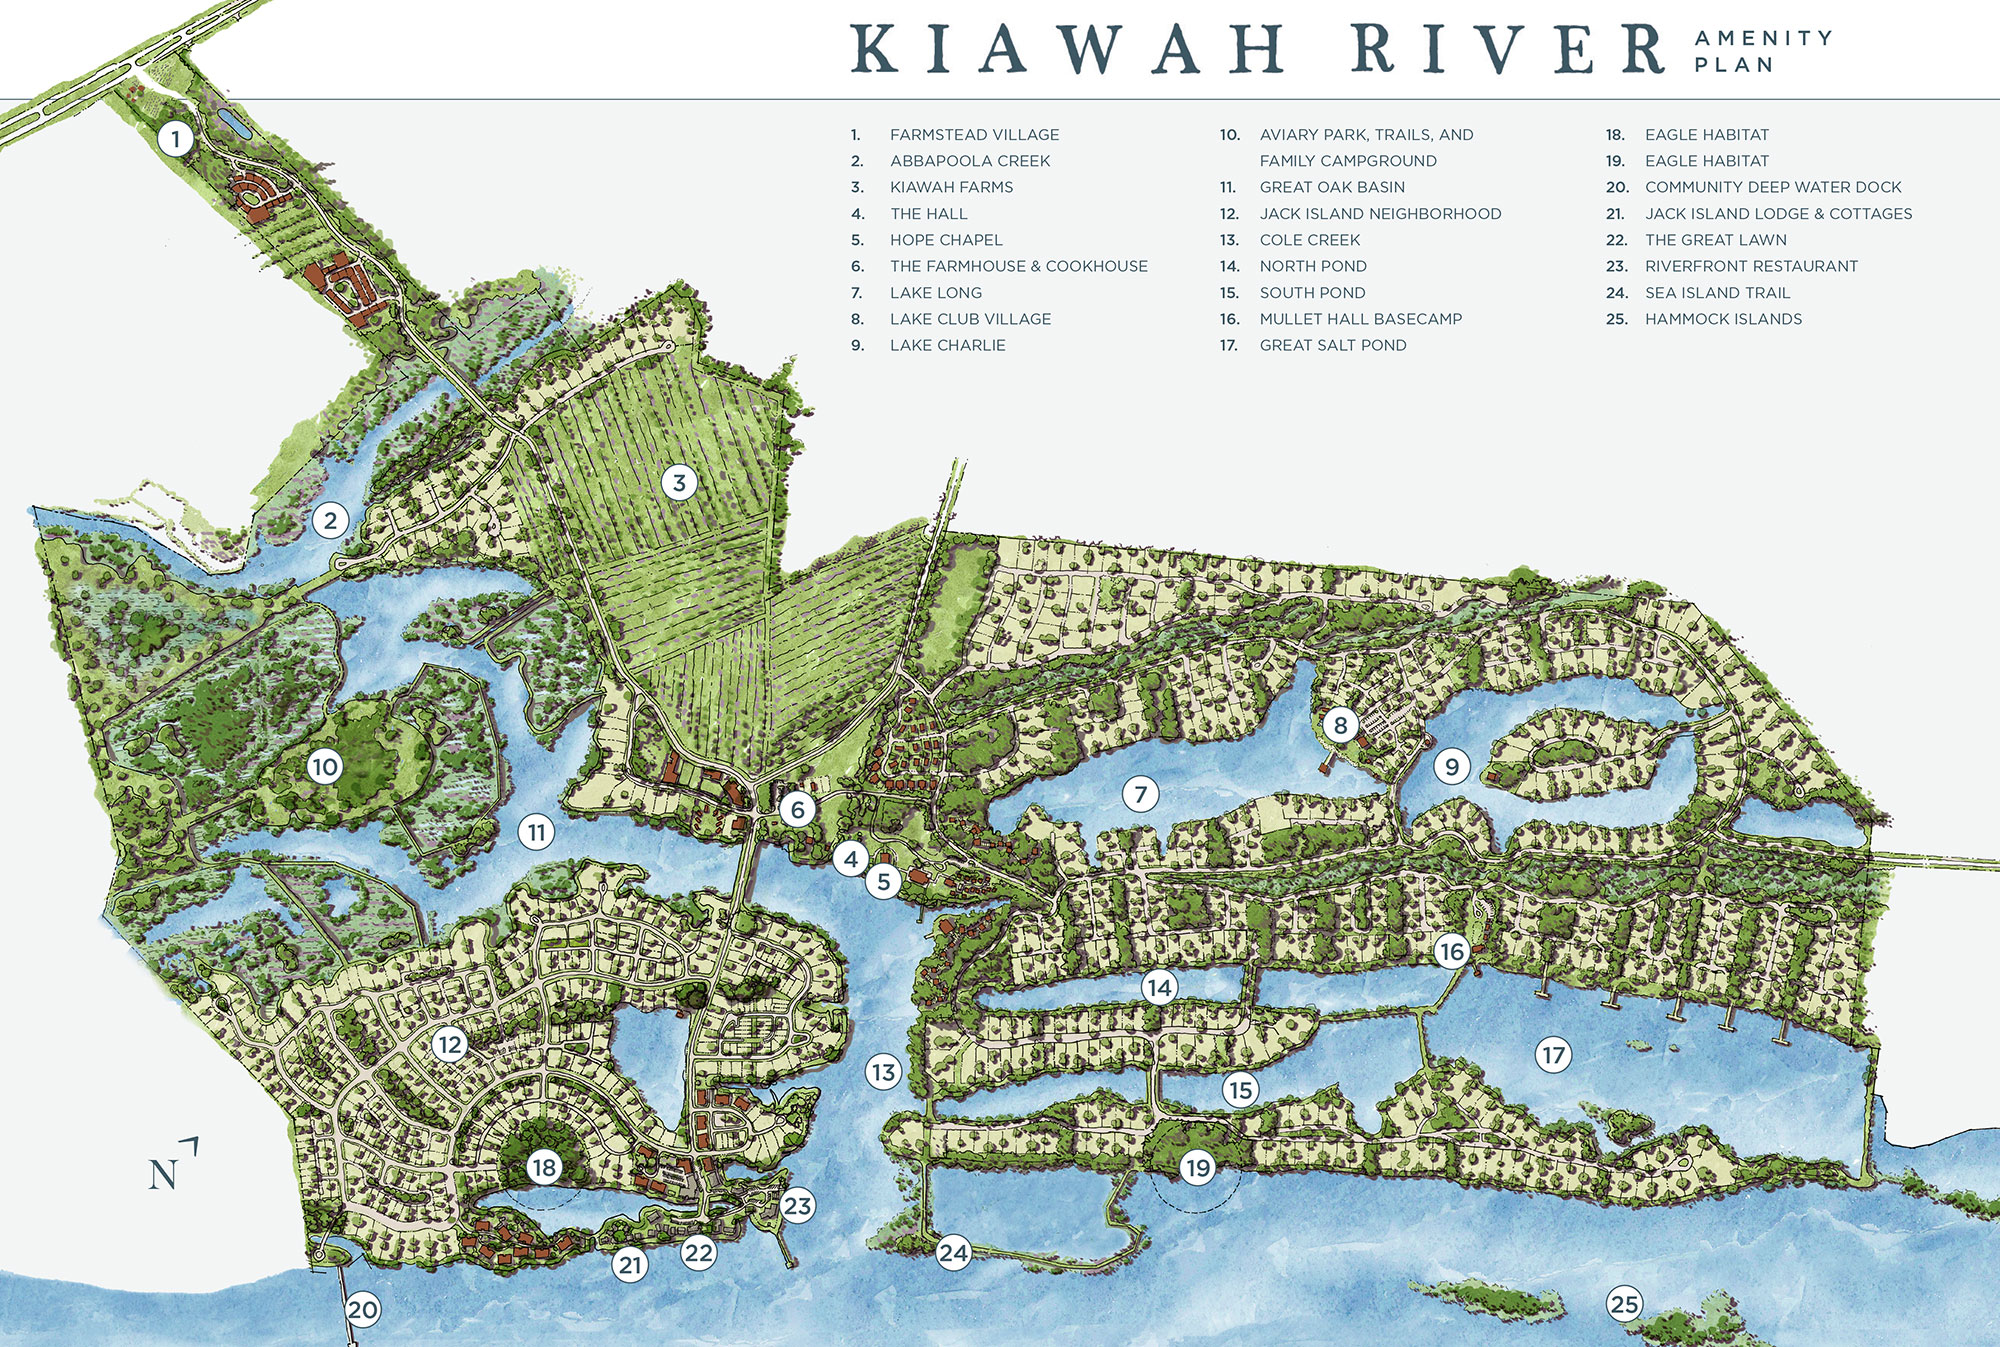 Kiawah River Amenity Plan